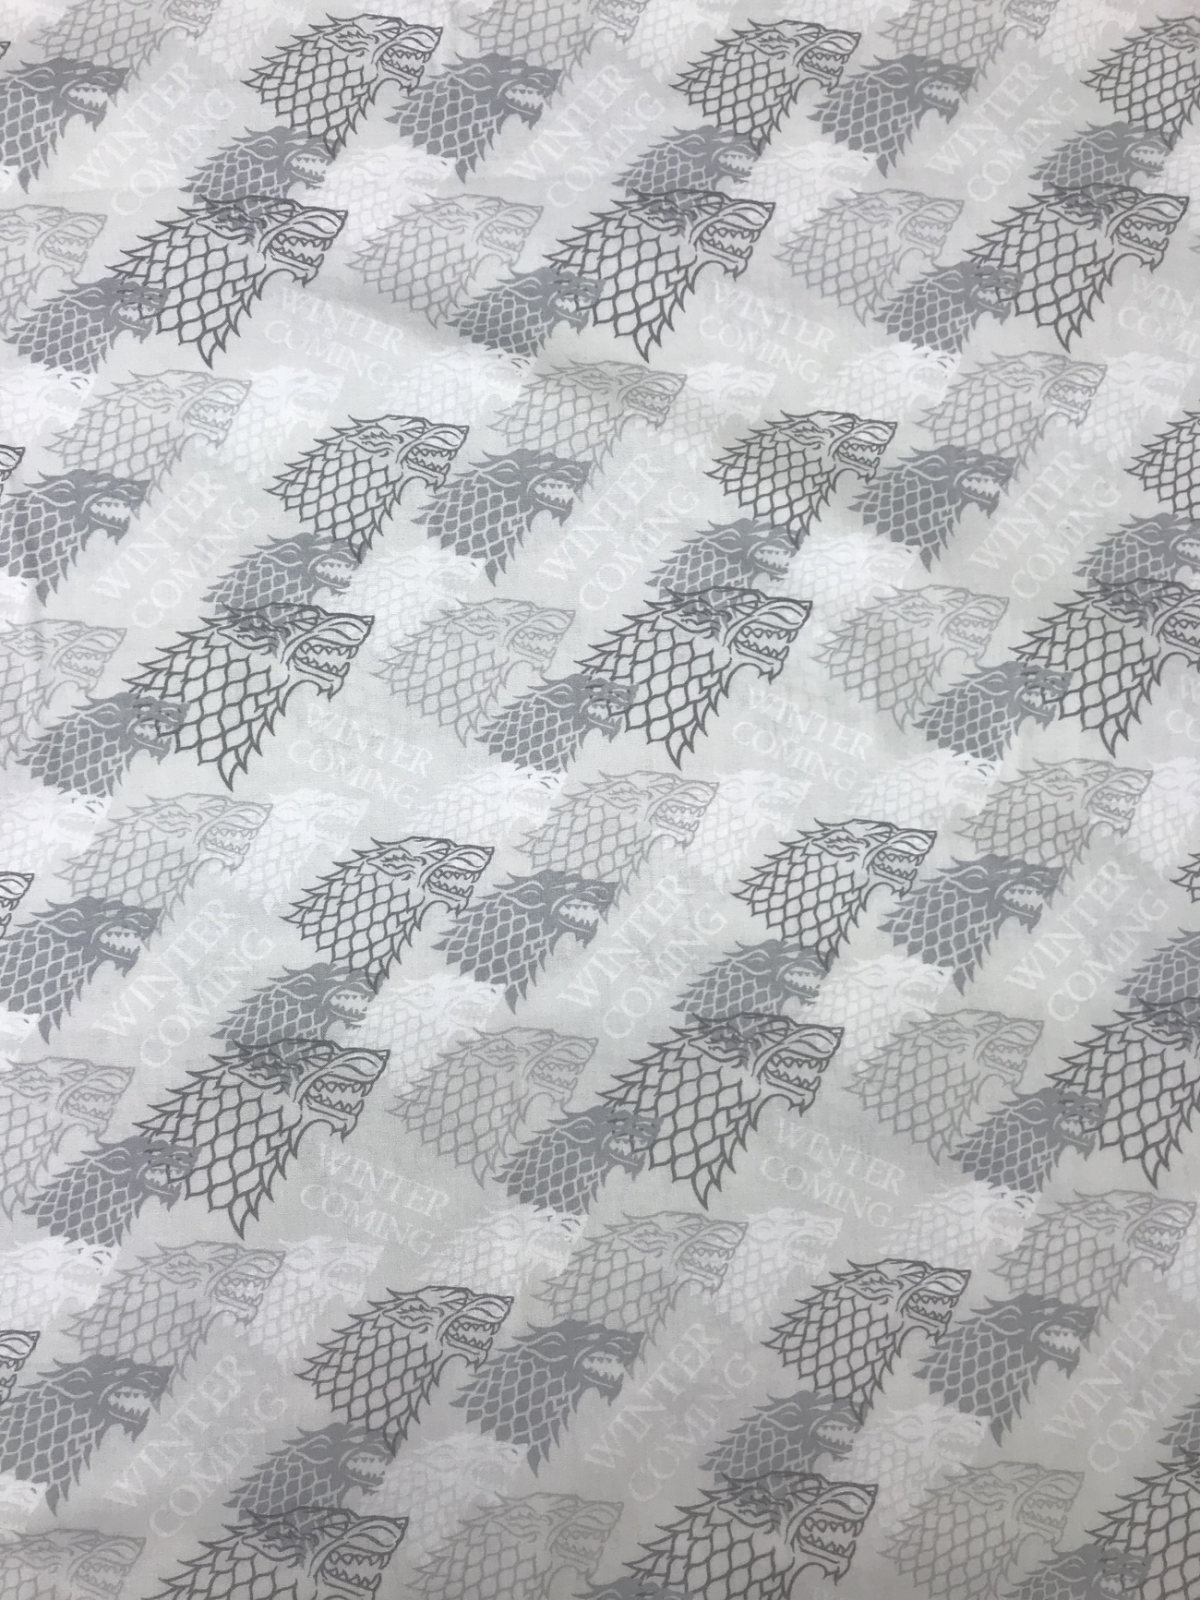 Game of Thrones Fabric by Springs Creative